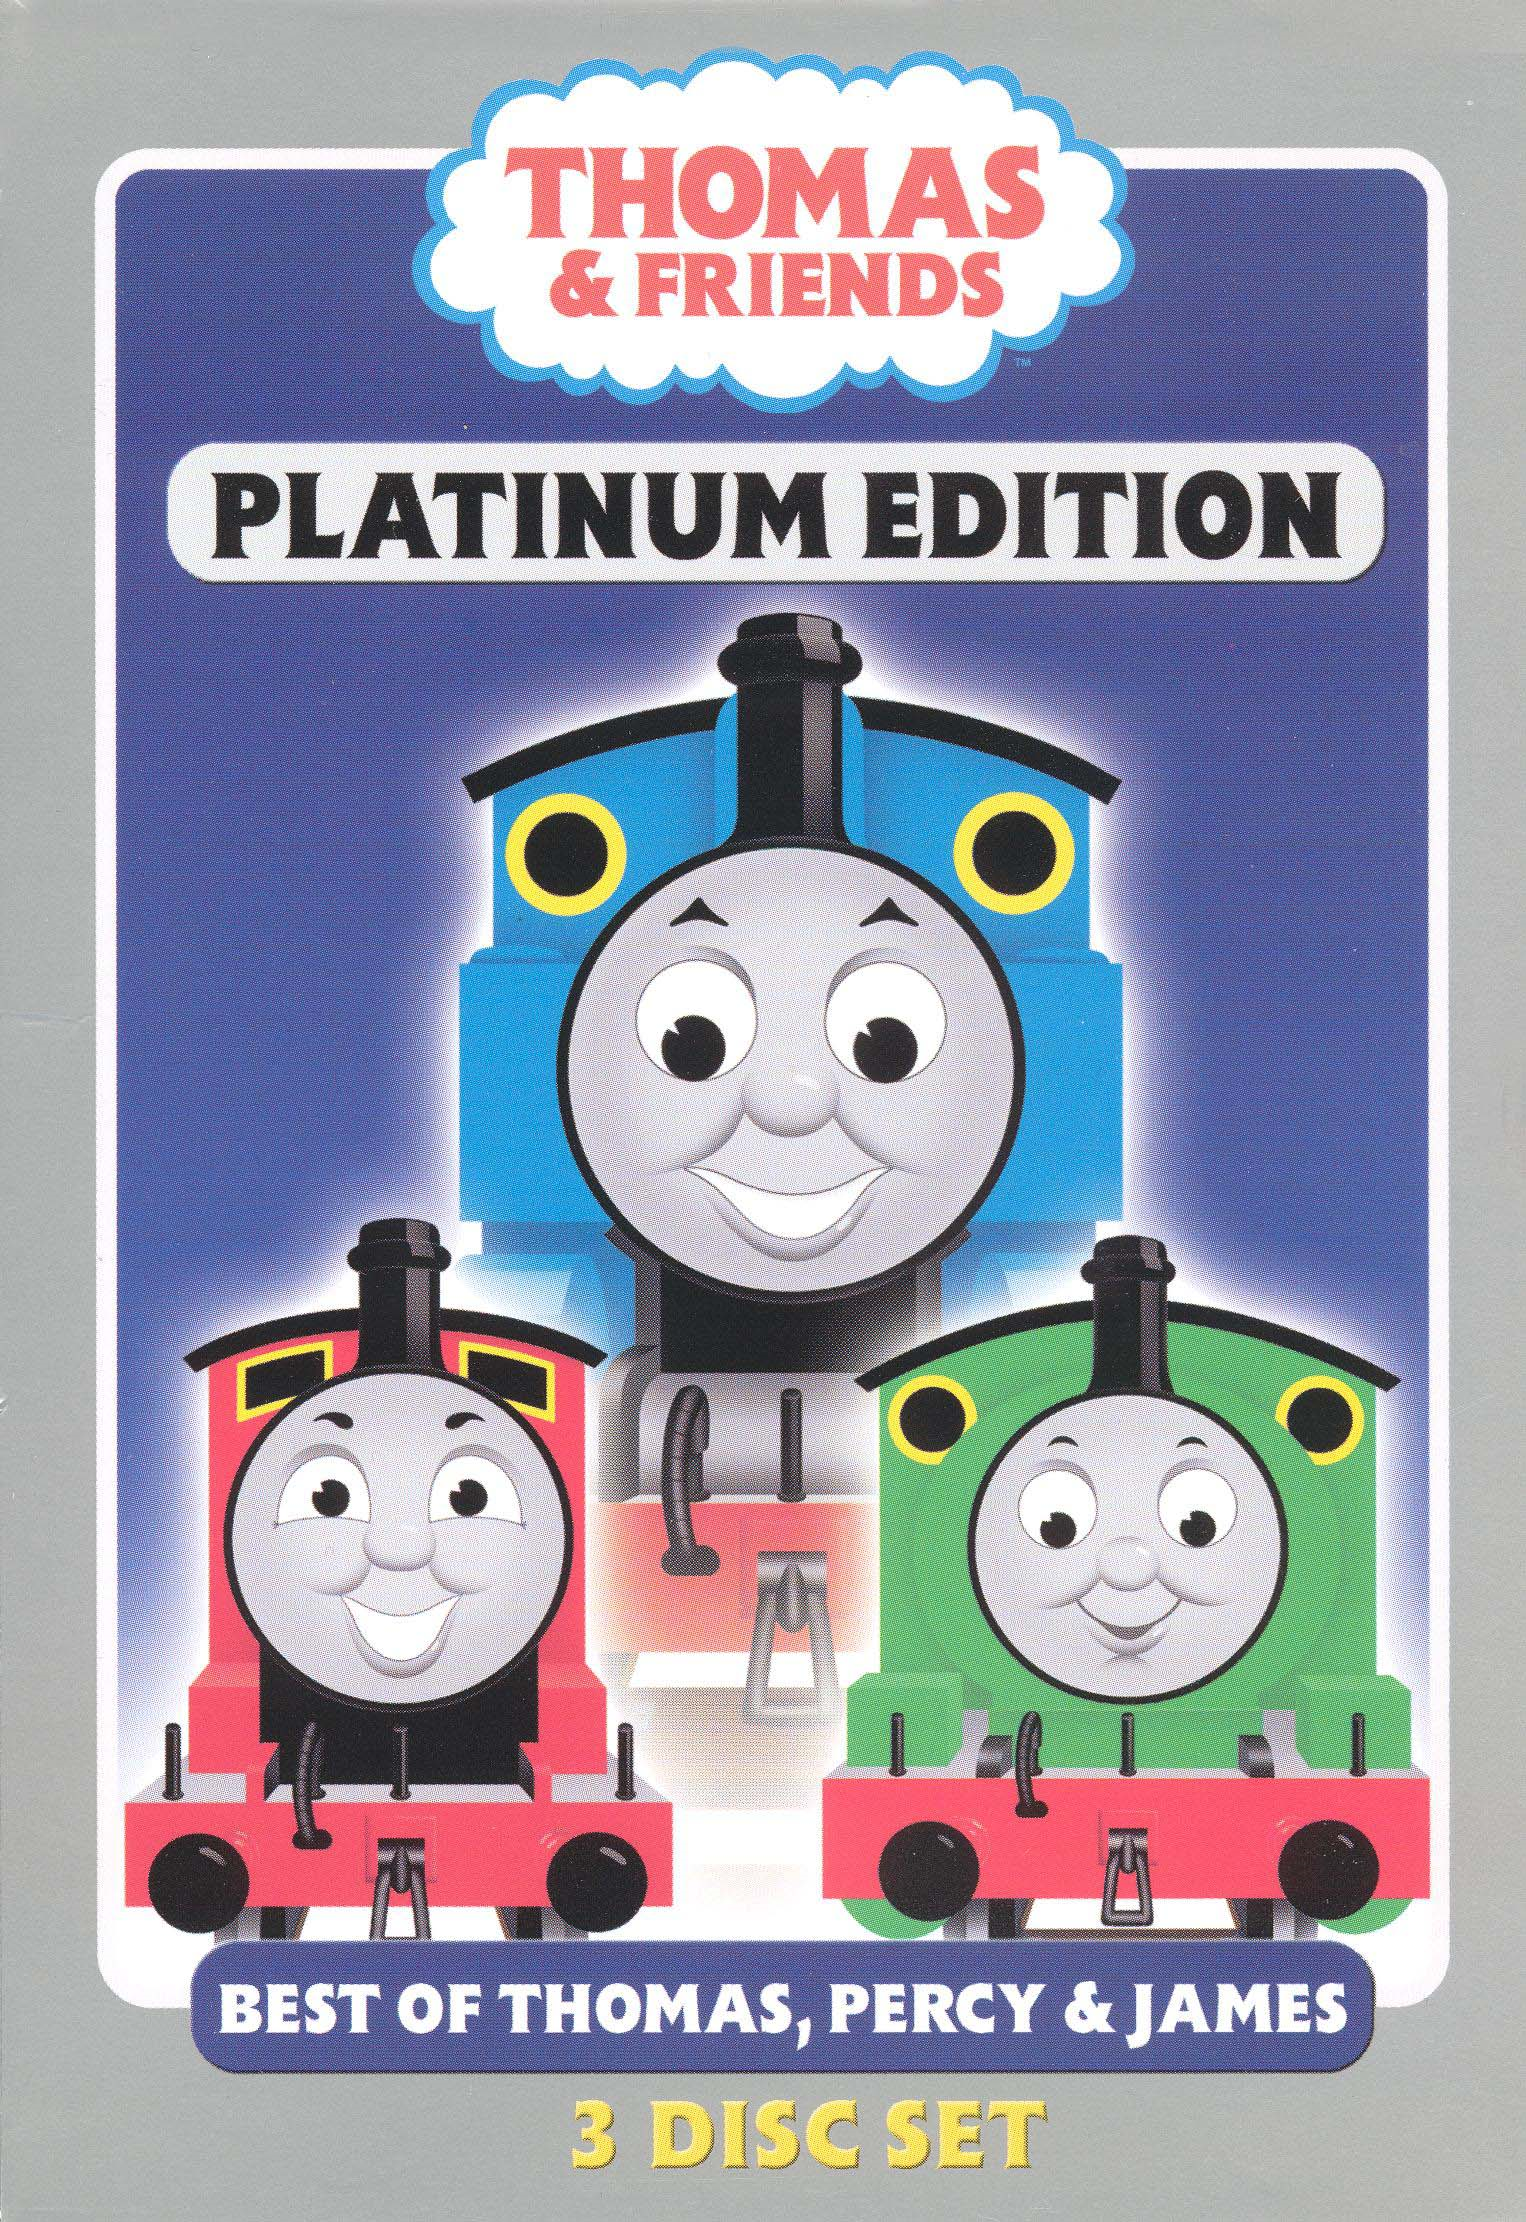 Best of Thomas, Percy and James Platinum Edition